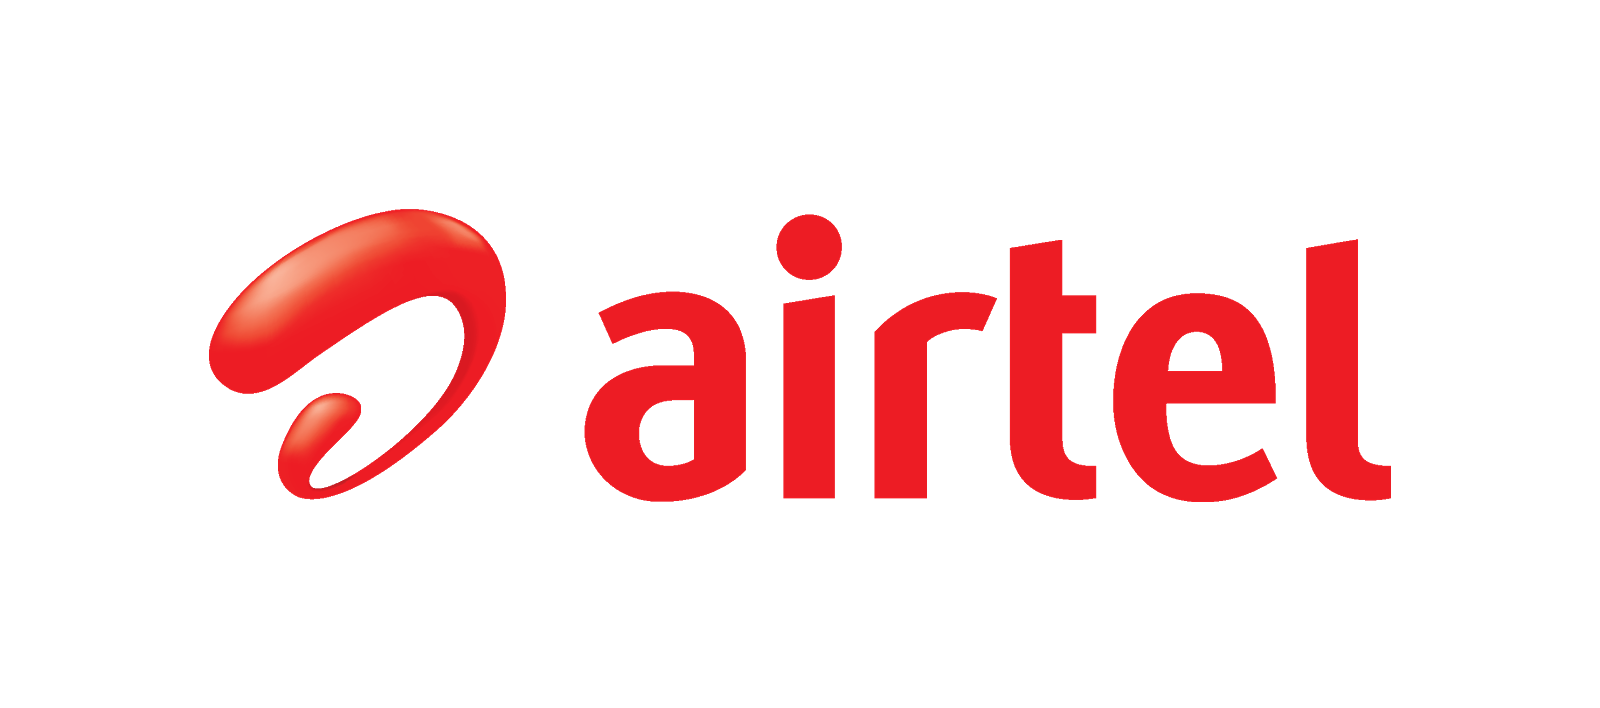 how to get free recharge in airtel mobile